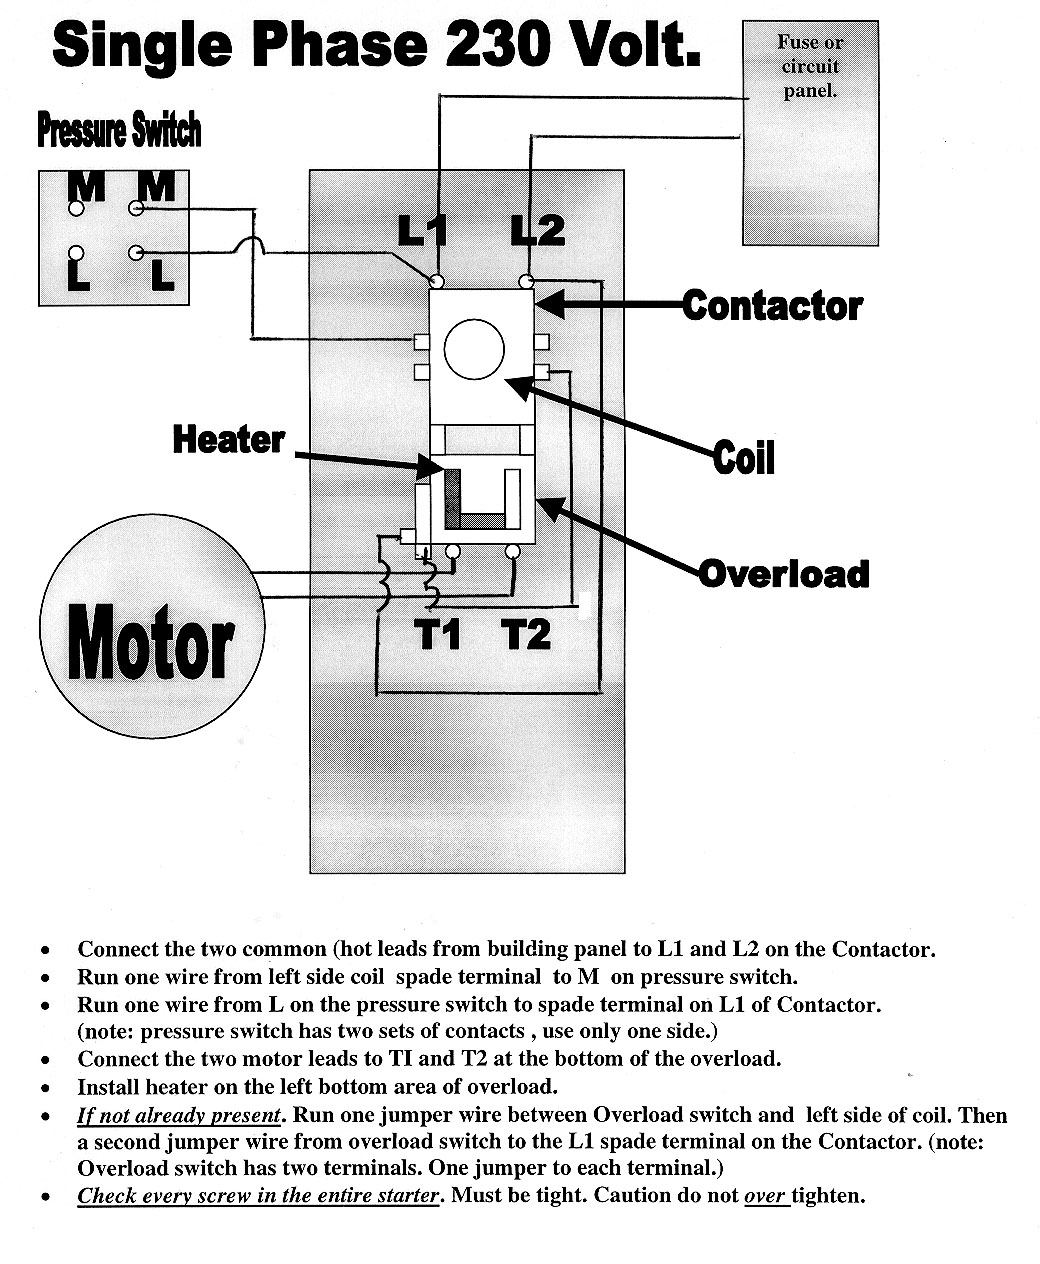 square d starters rh ccparts net 3 phase electric motor starter wiring diagram schneider electric motor starter wiring diagram